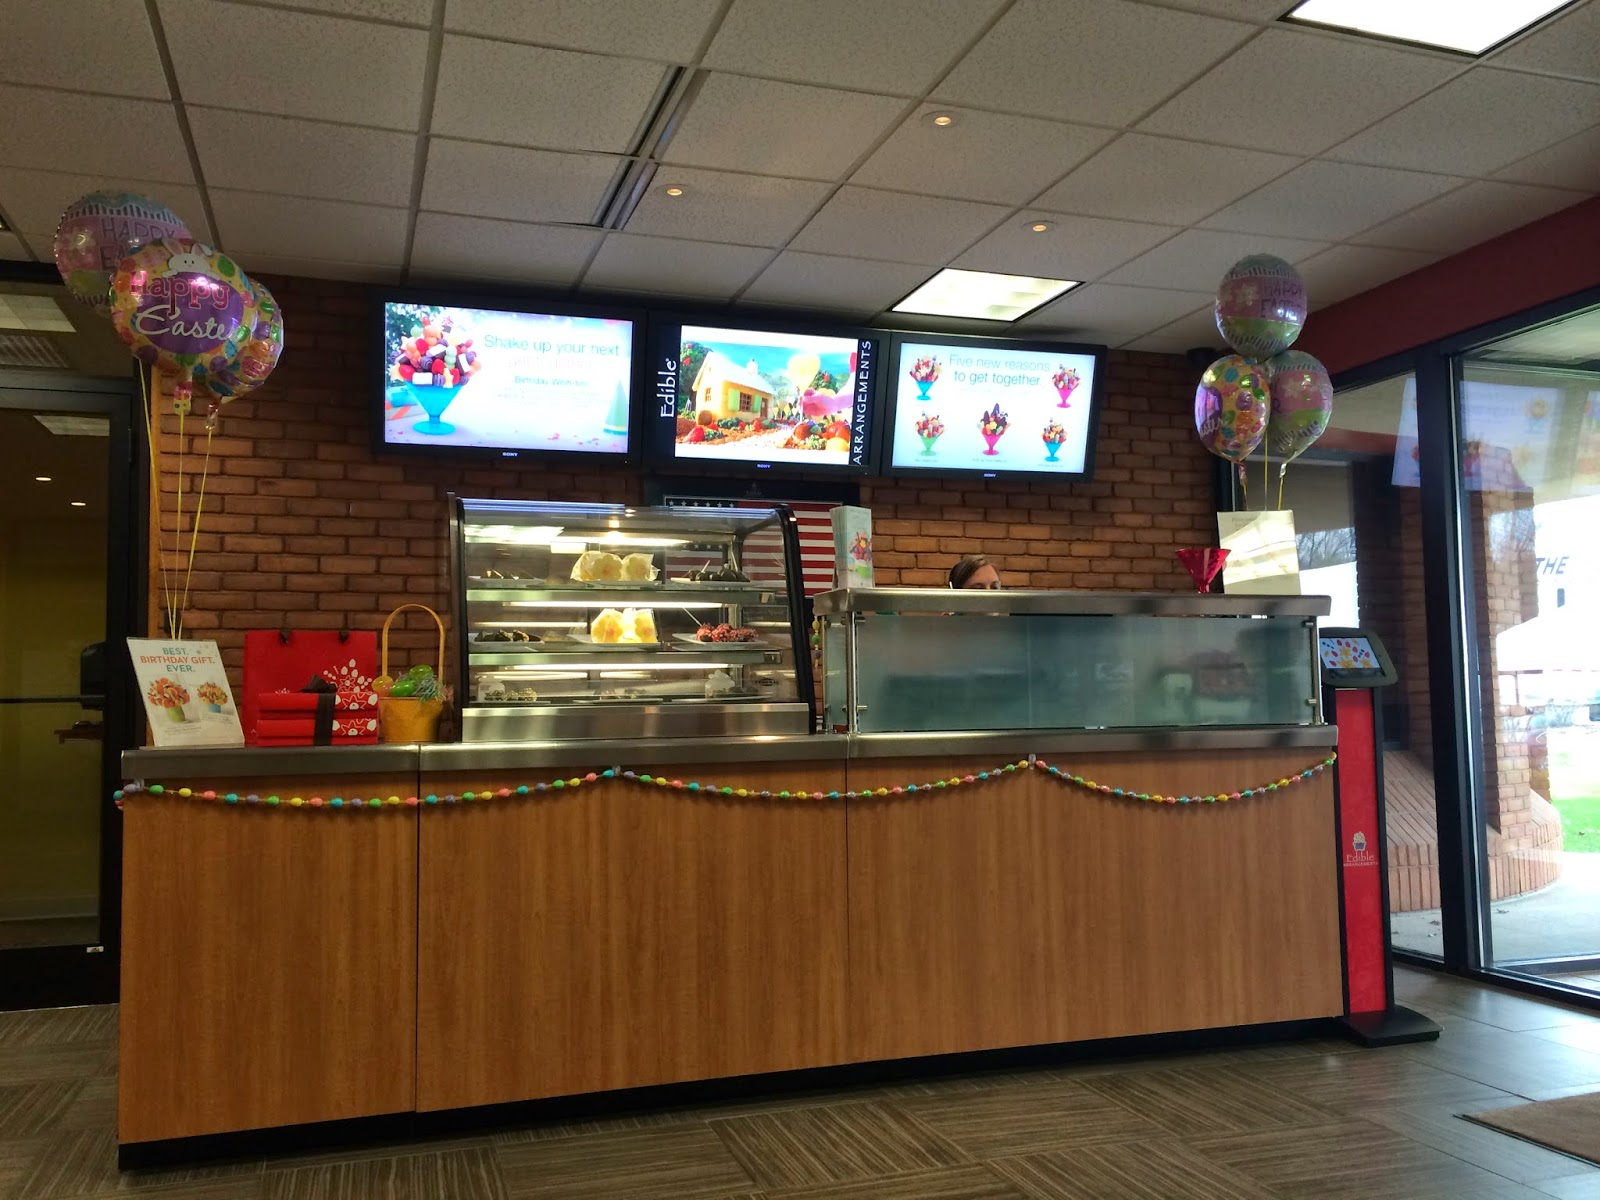 hockey mom stitchin hobby  reception desk and lobby of the edible arrangements office in wallingford ct fun way to be greeted at the corporate office looks like the lobby front of